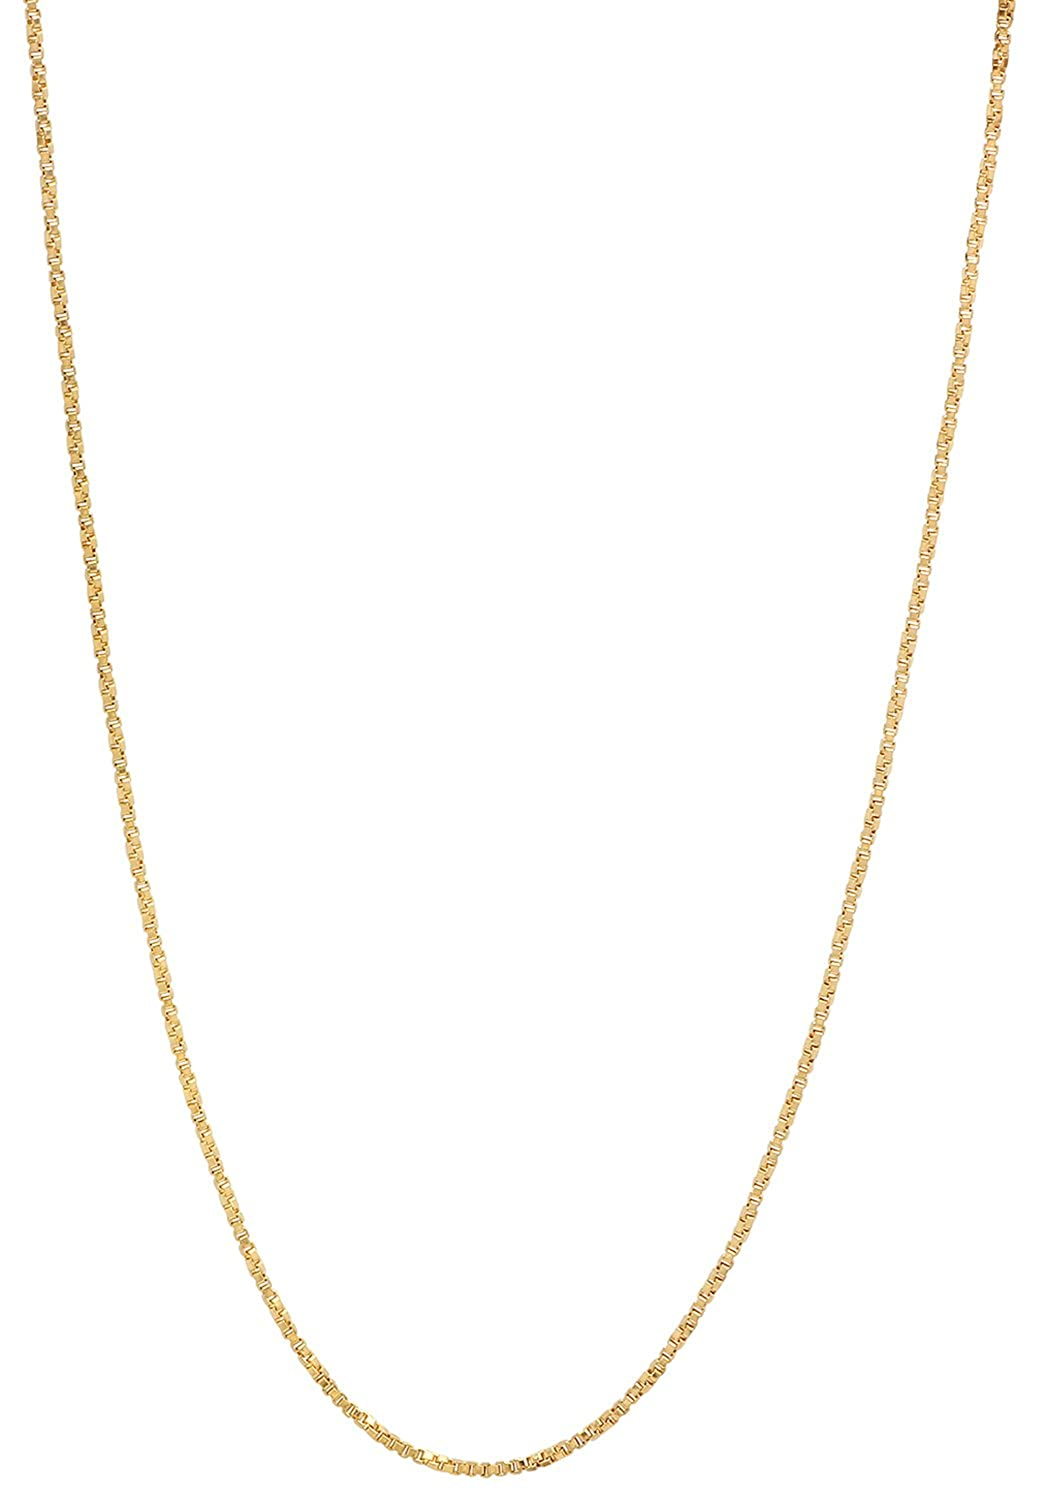 The Bling Factory 1.1mm 25 Mills 14k Gold Plated Twisted Box Link Chain